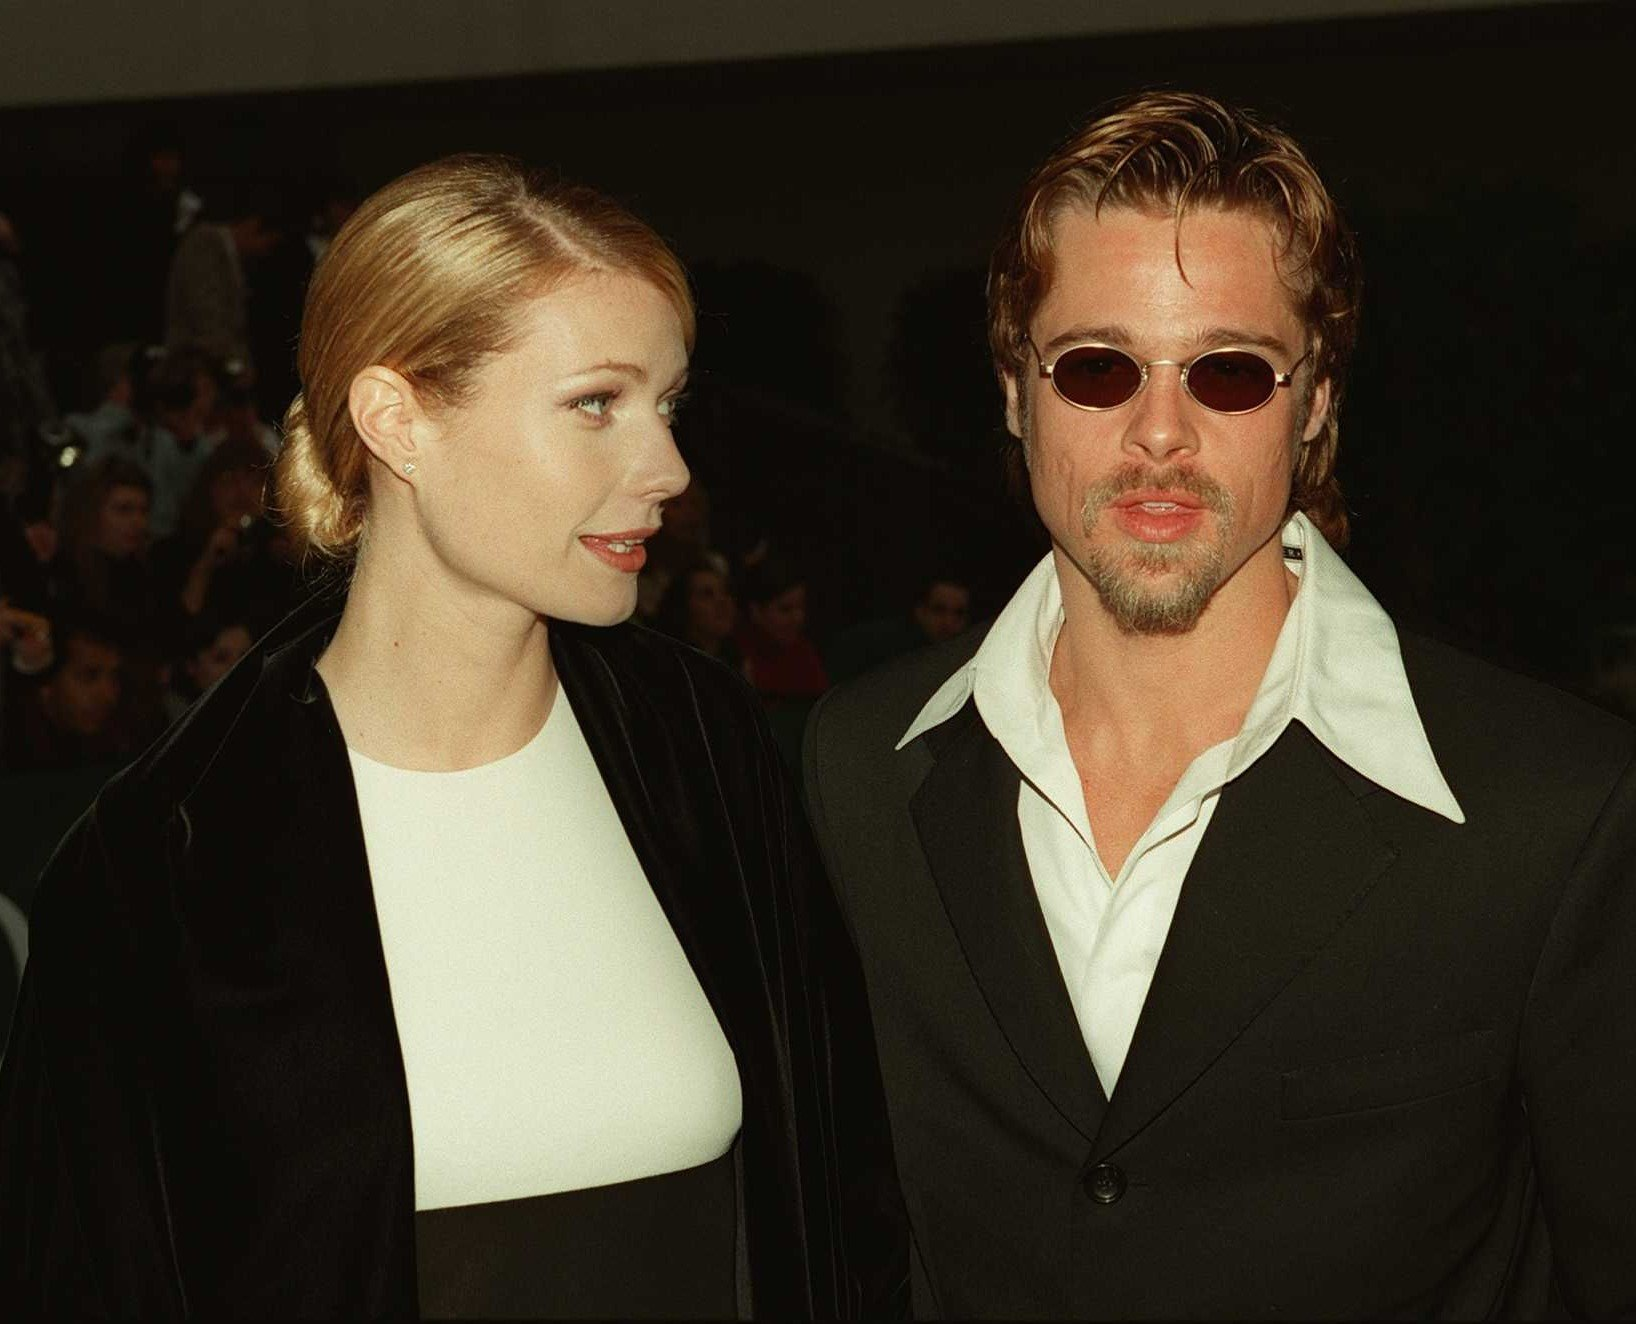 Brad Pitt and Gwyneth Paltrow attend the 1996 Golden Globe Awards / Getty Images